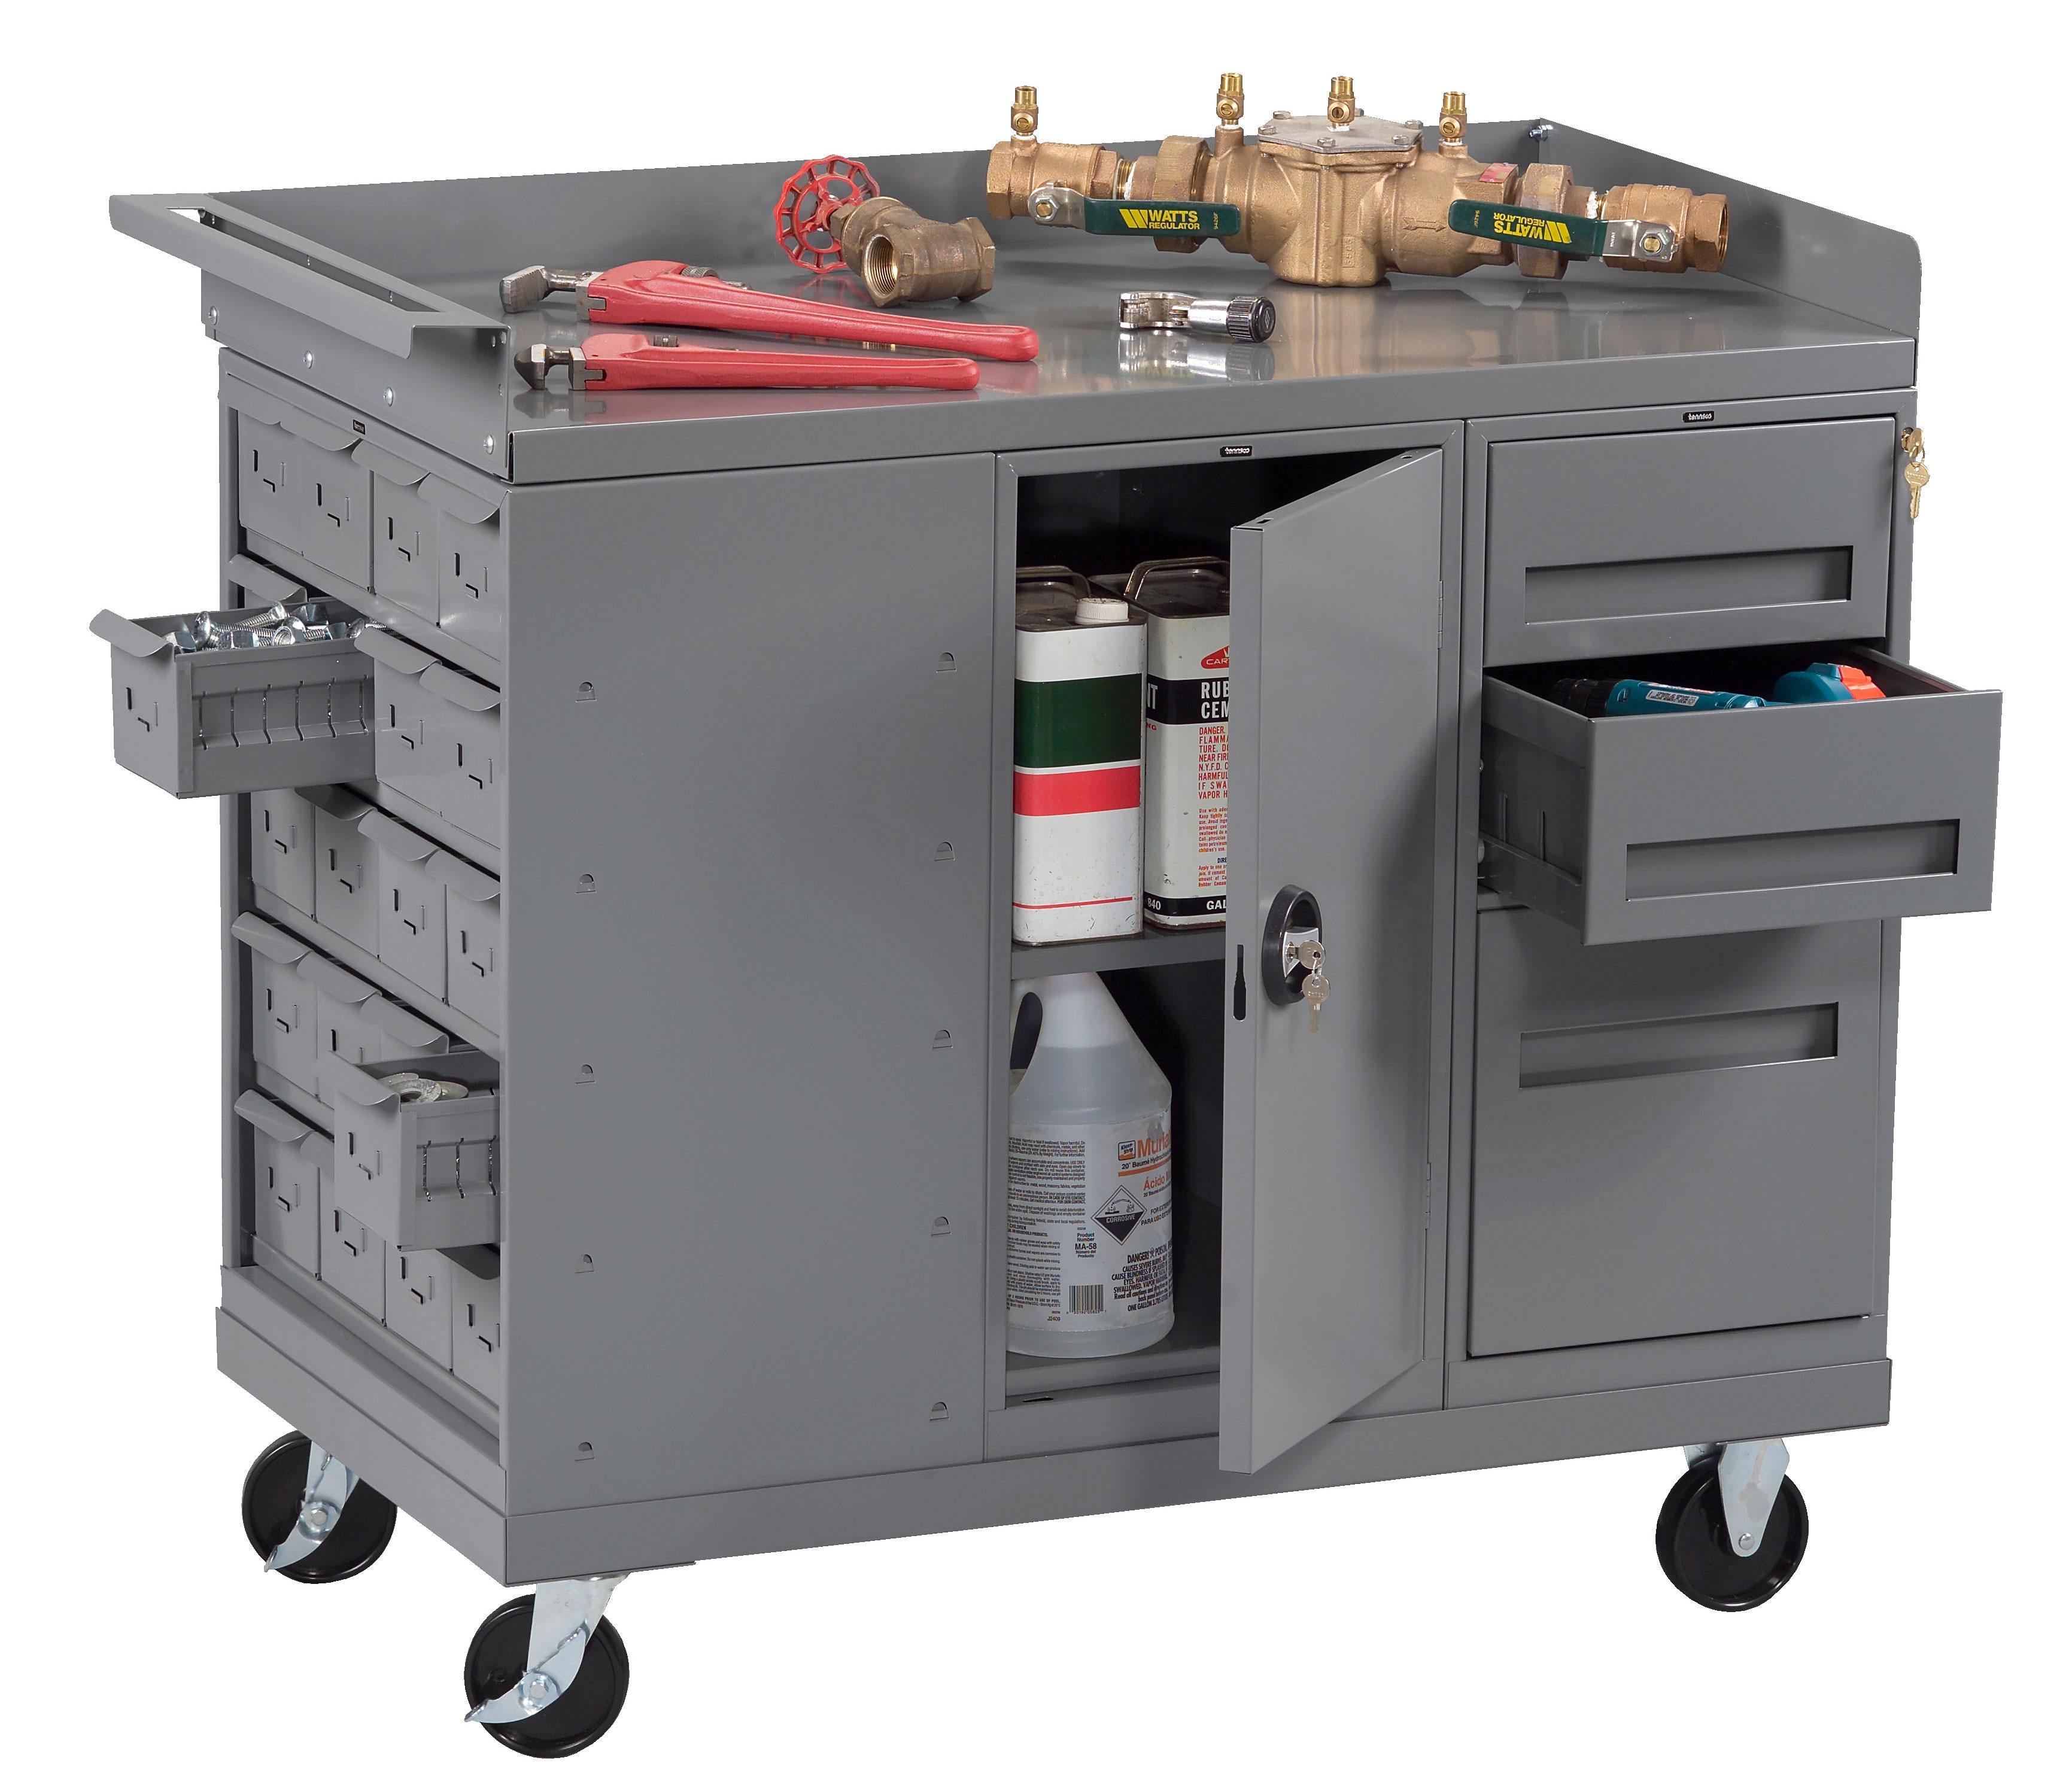 Tennsco MB-3-2545 Mobile Workbench with Cabinet and 3 Drawers and 20 Bins